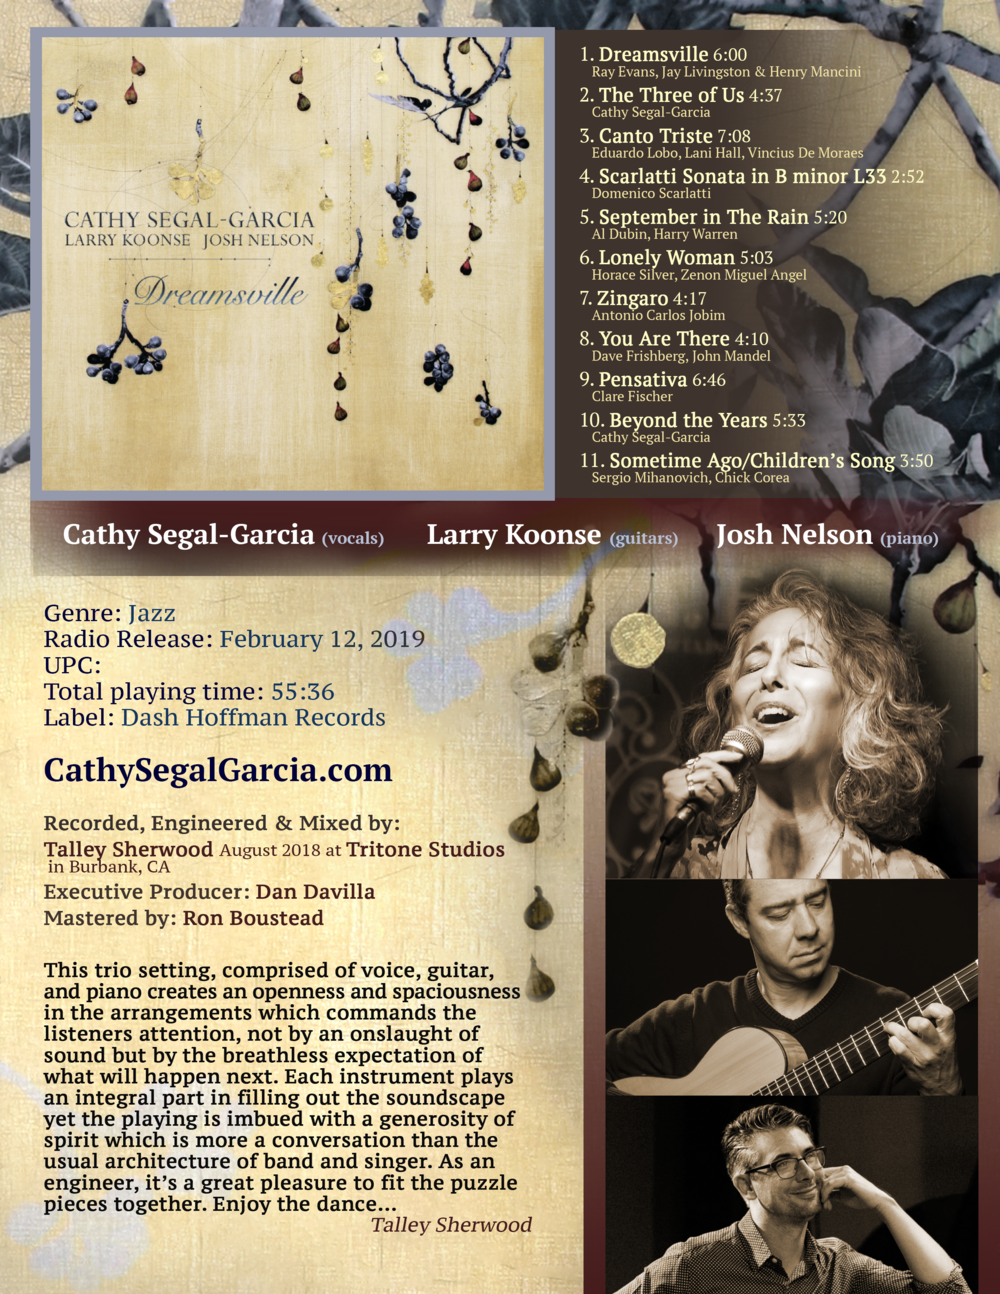 Cathy Segal Garcia_Dreamsville_OS PROOF.png